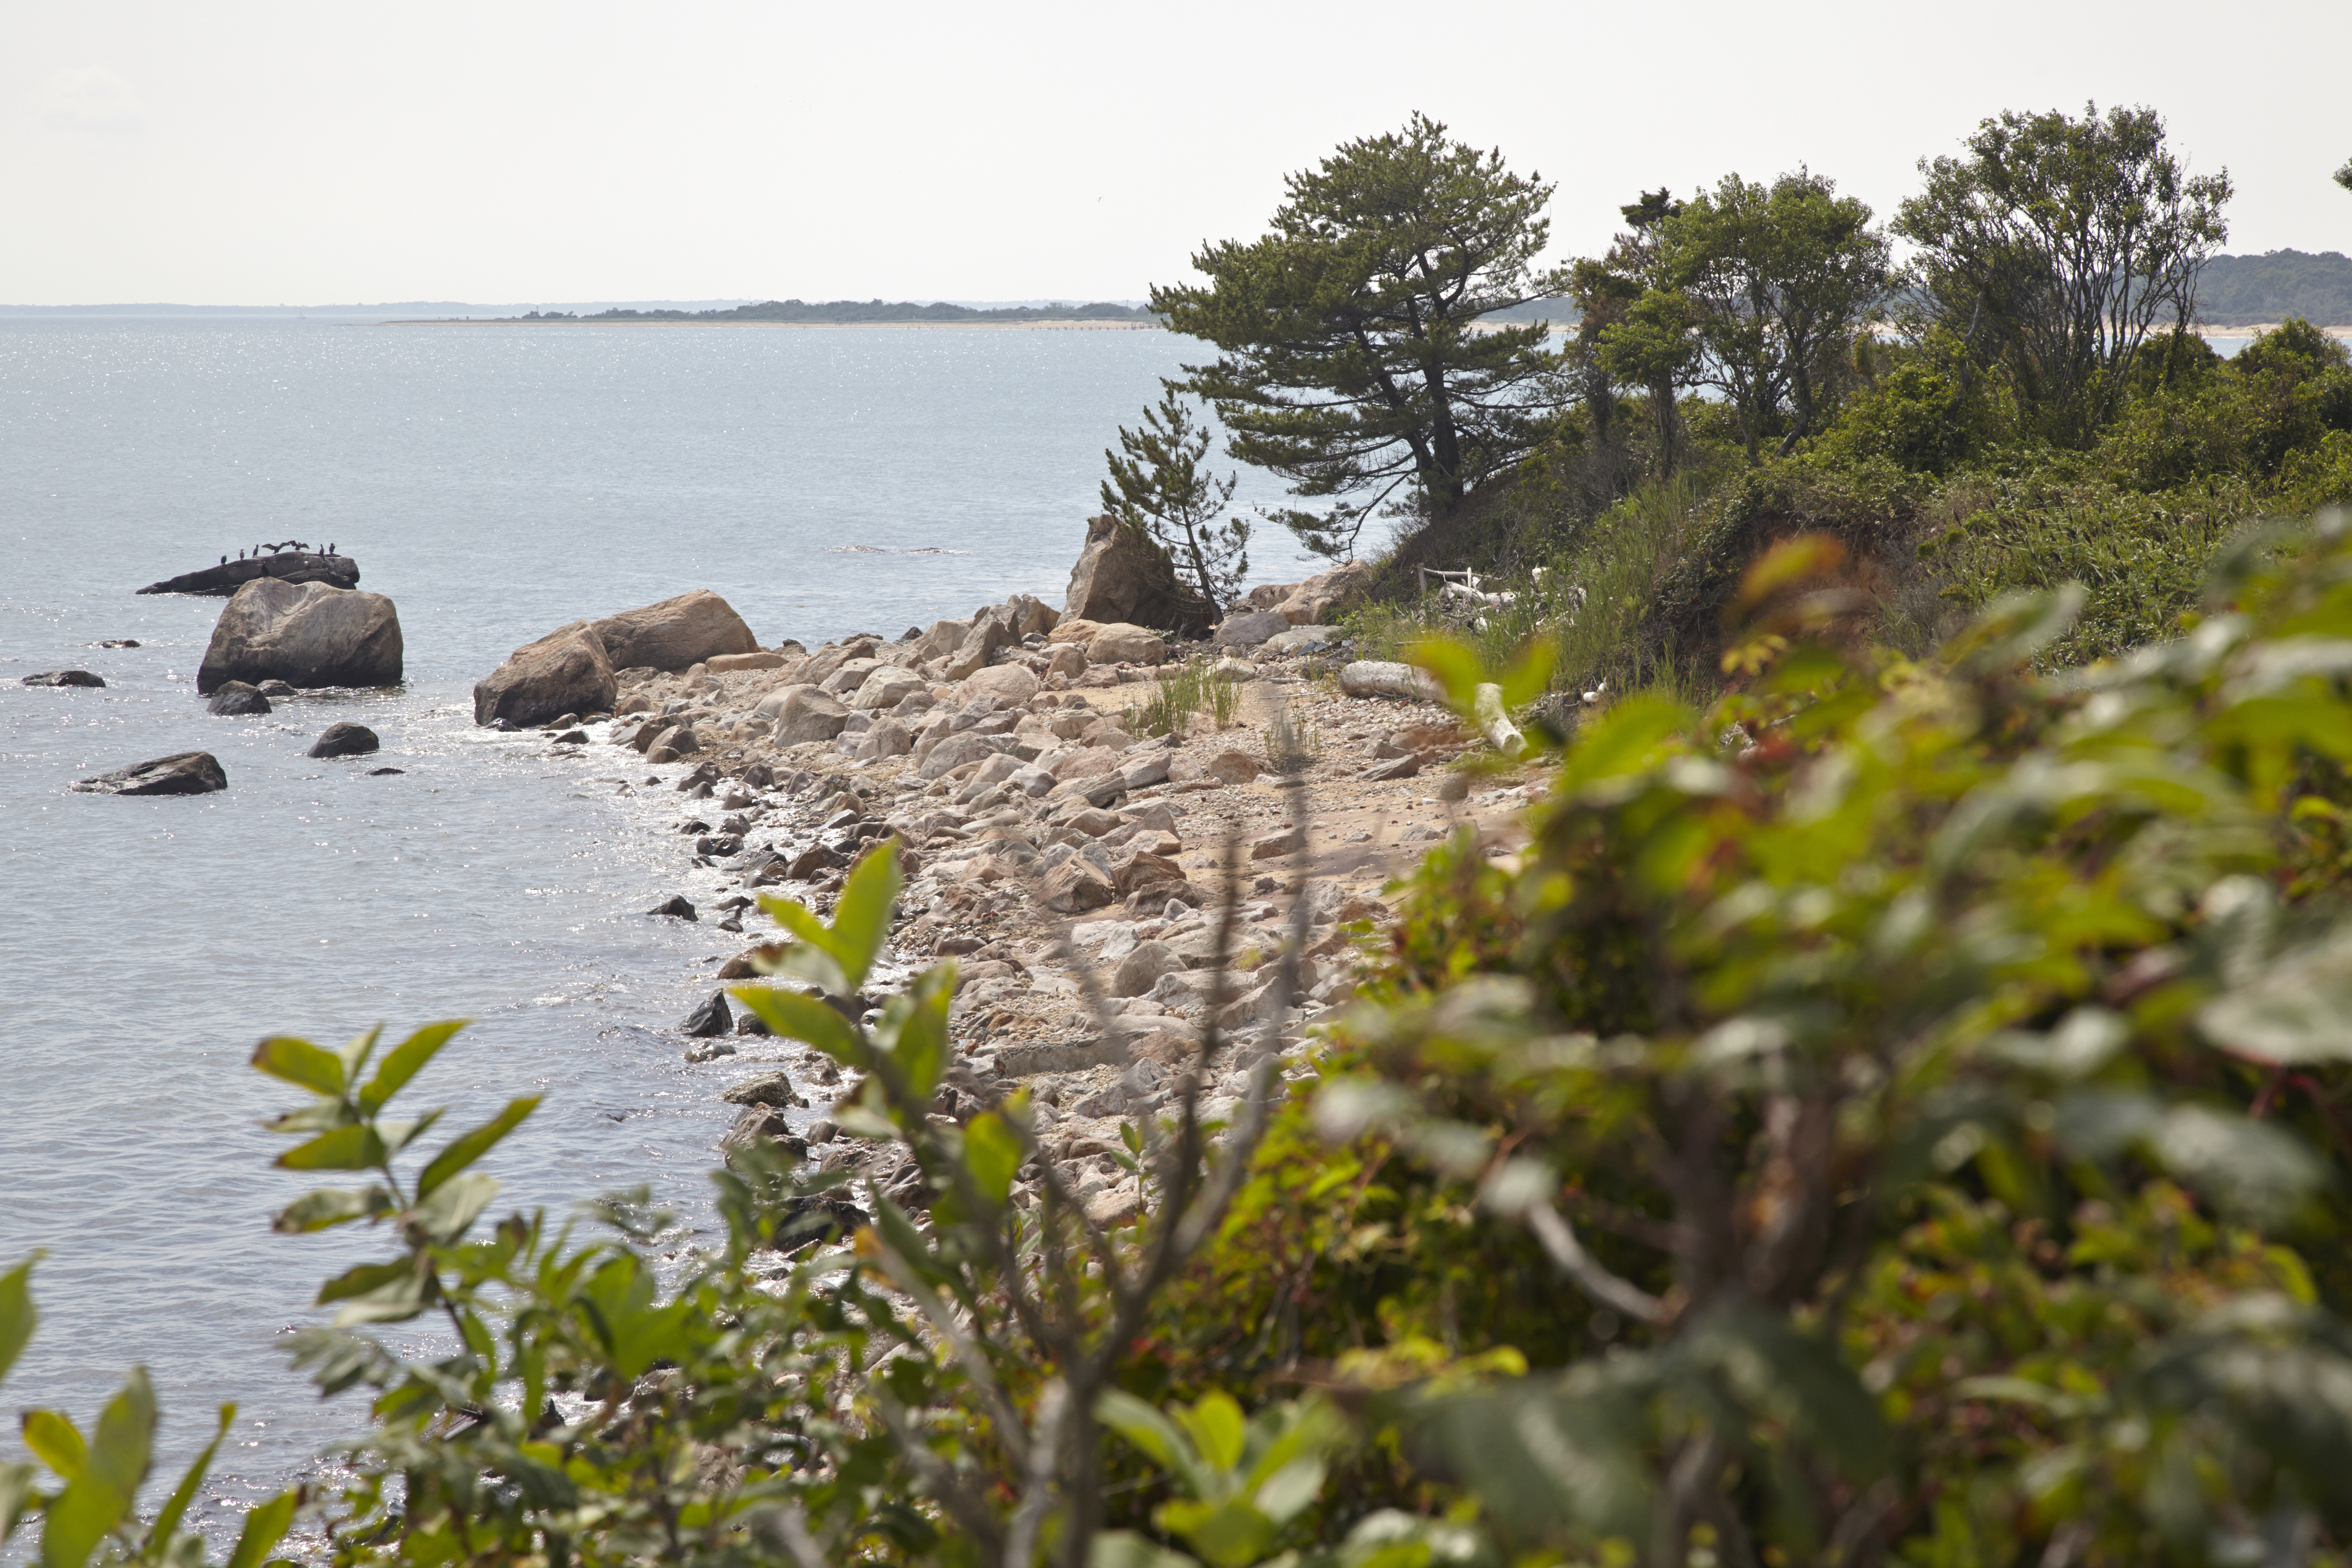 A view of Plum Island. Photo credit Bob Lorenz.